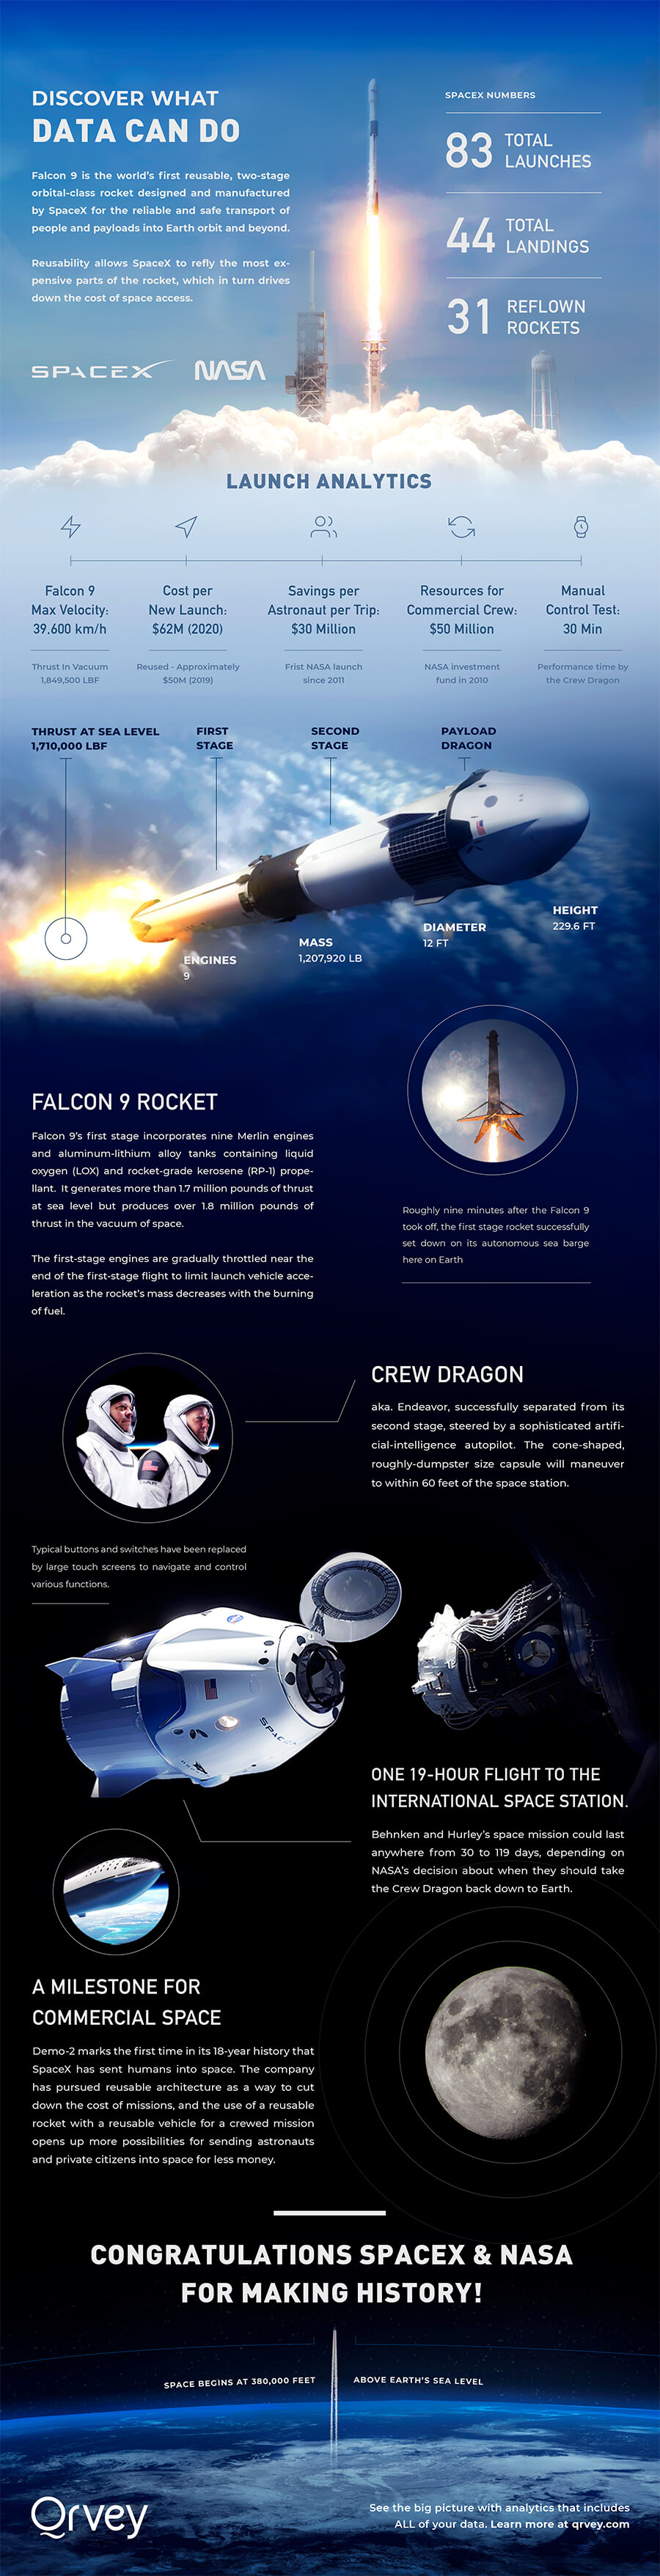 Infographic: Celebrating SpaceX and NASA